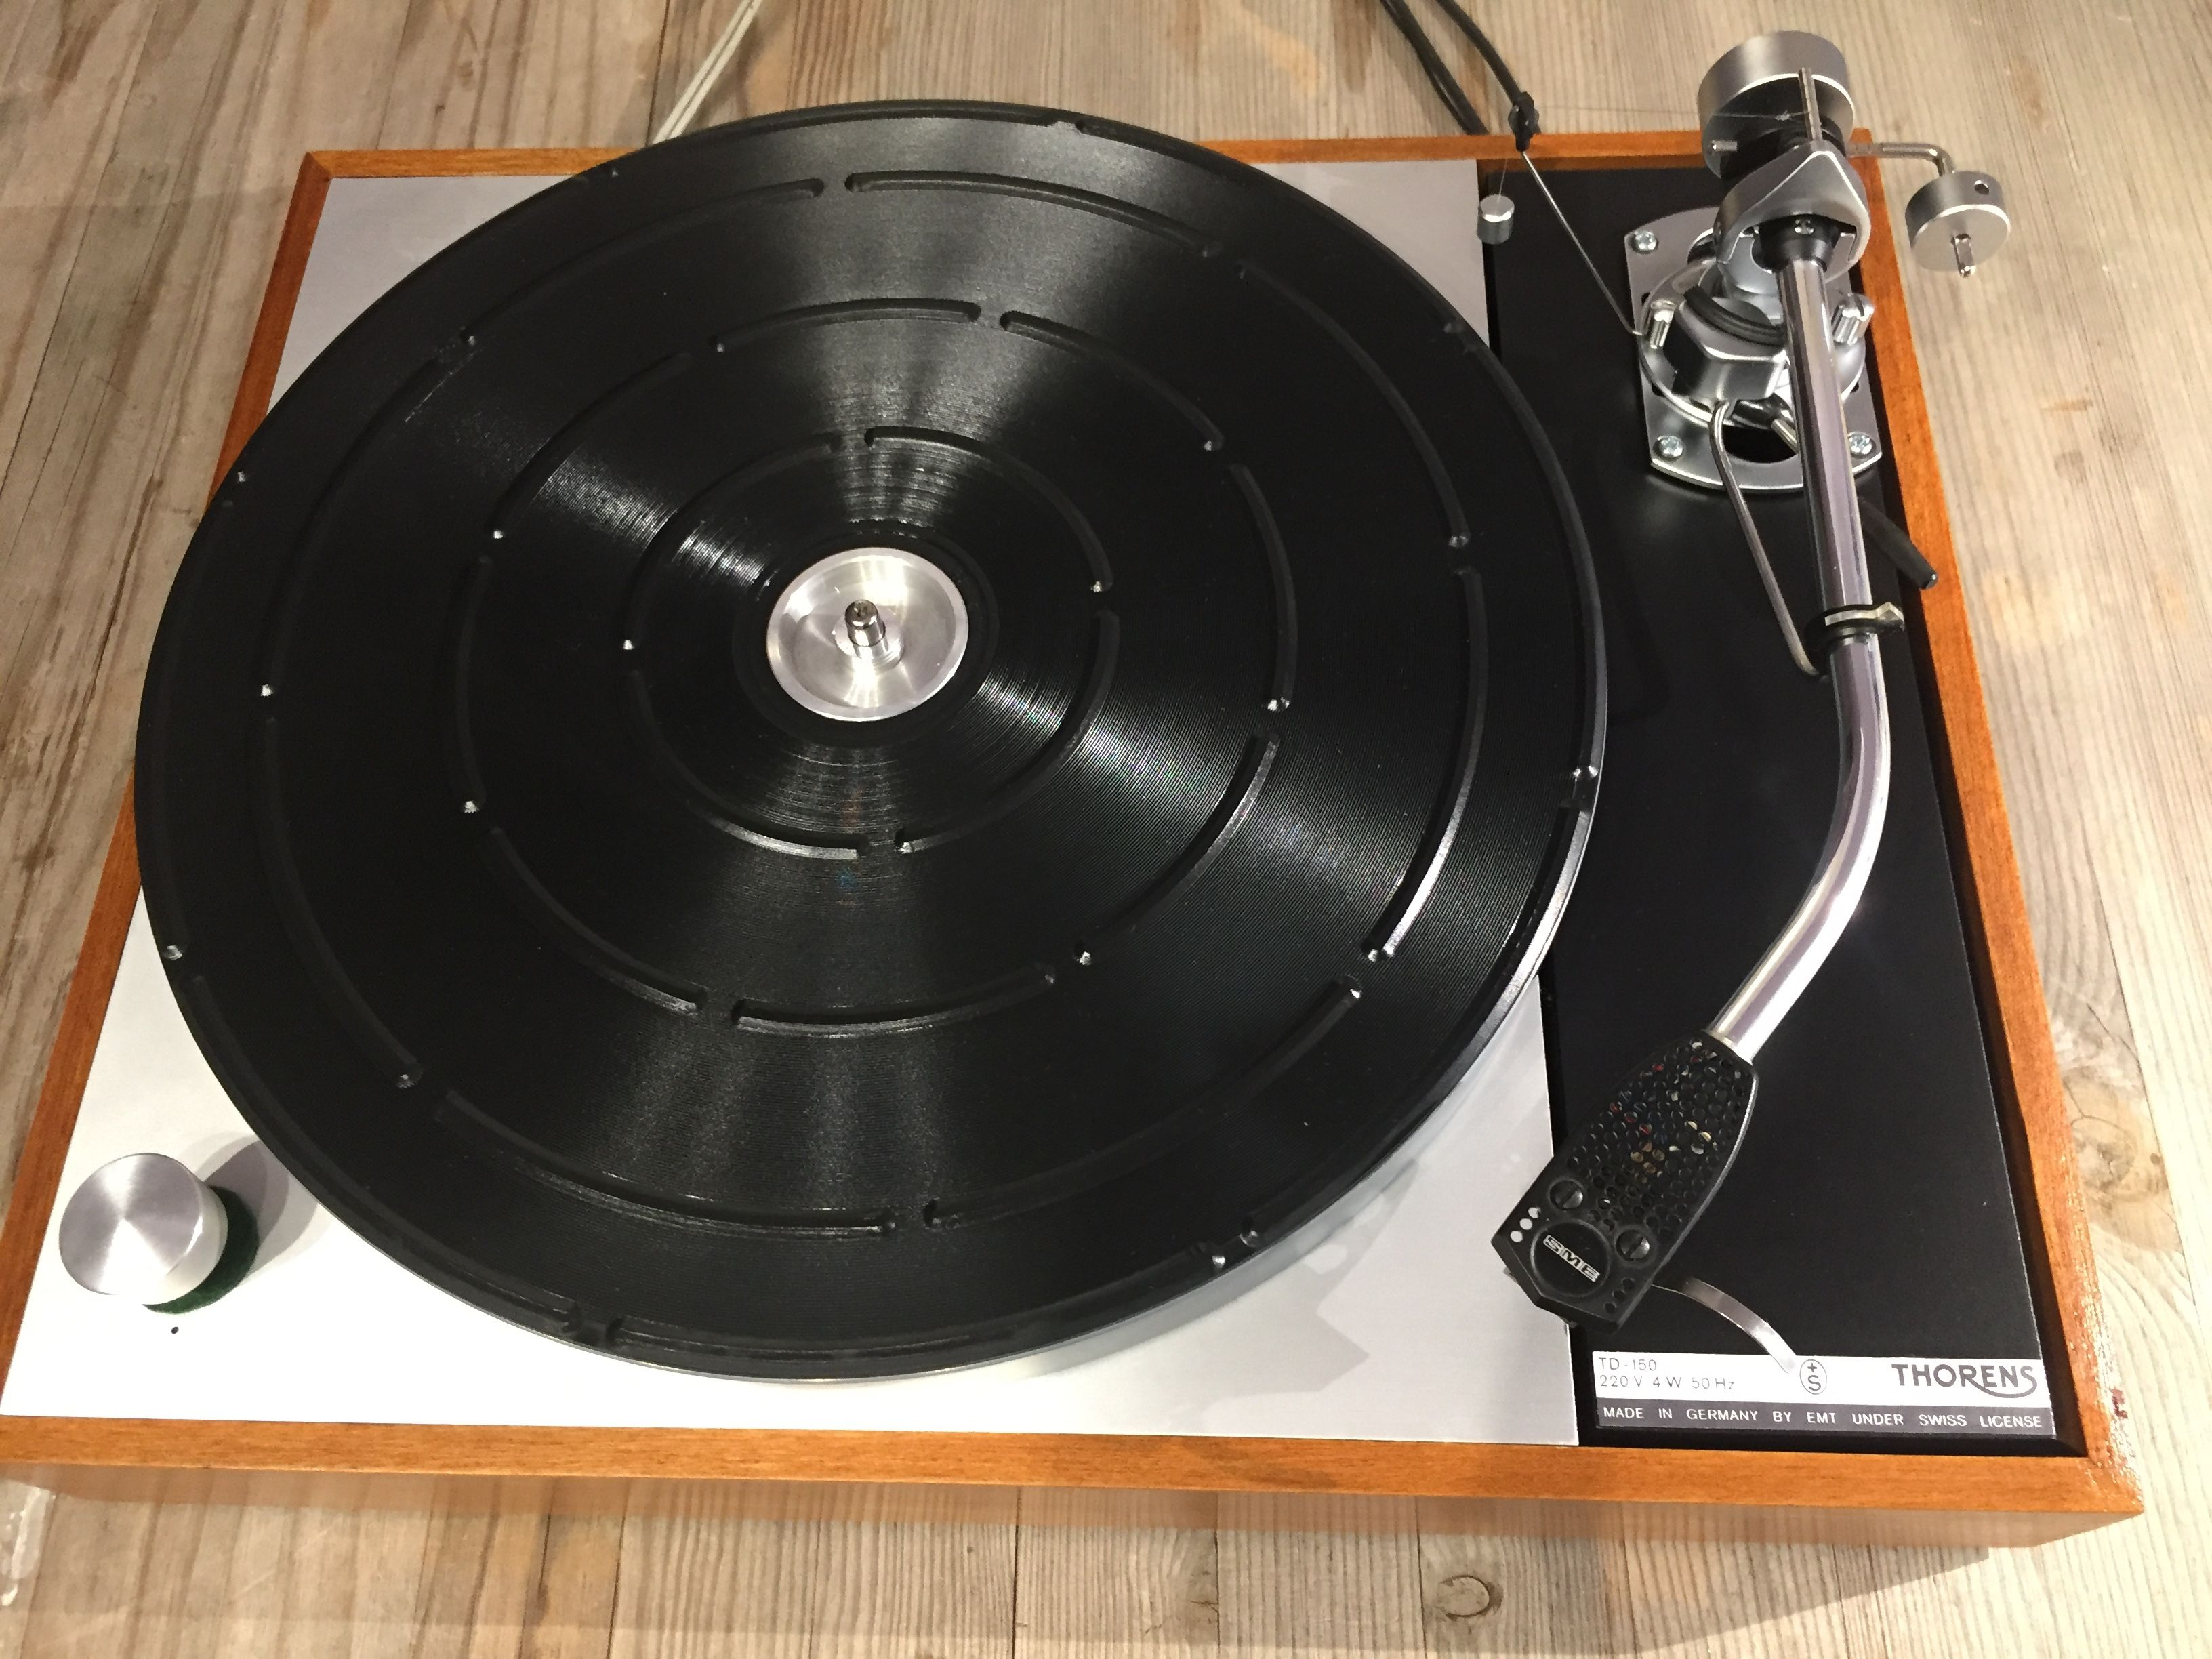 This is my refurbished turntable, a Thorens TD 150 with SME